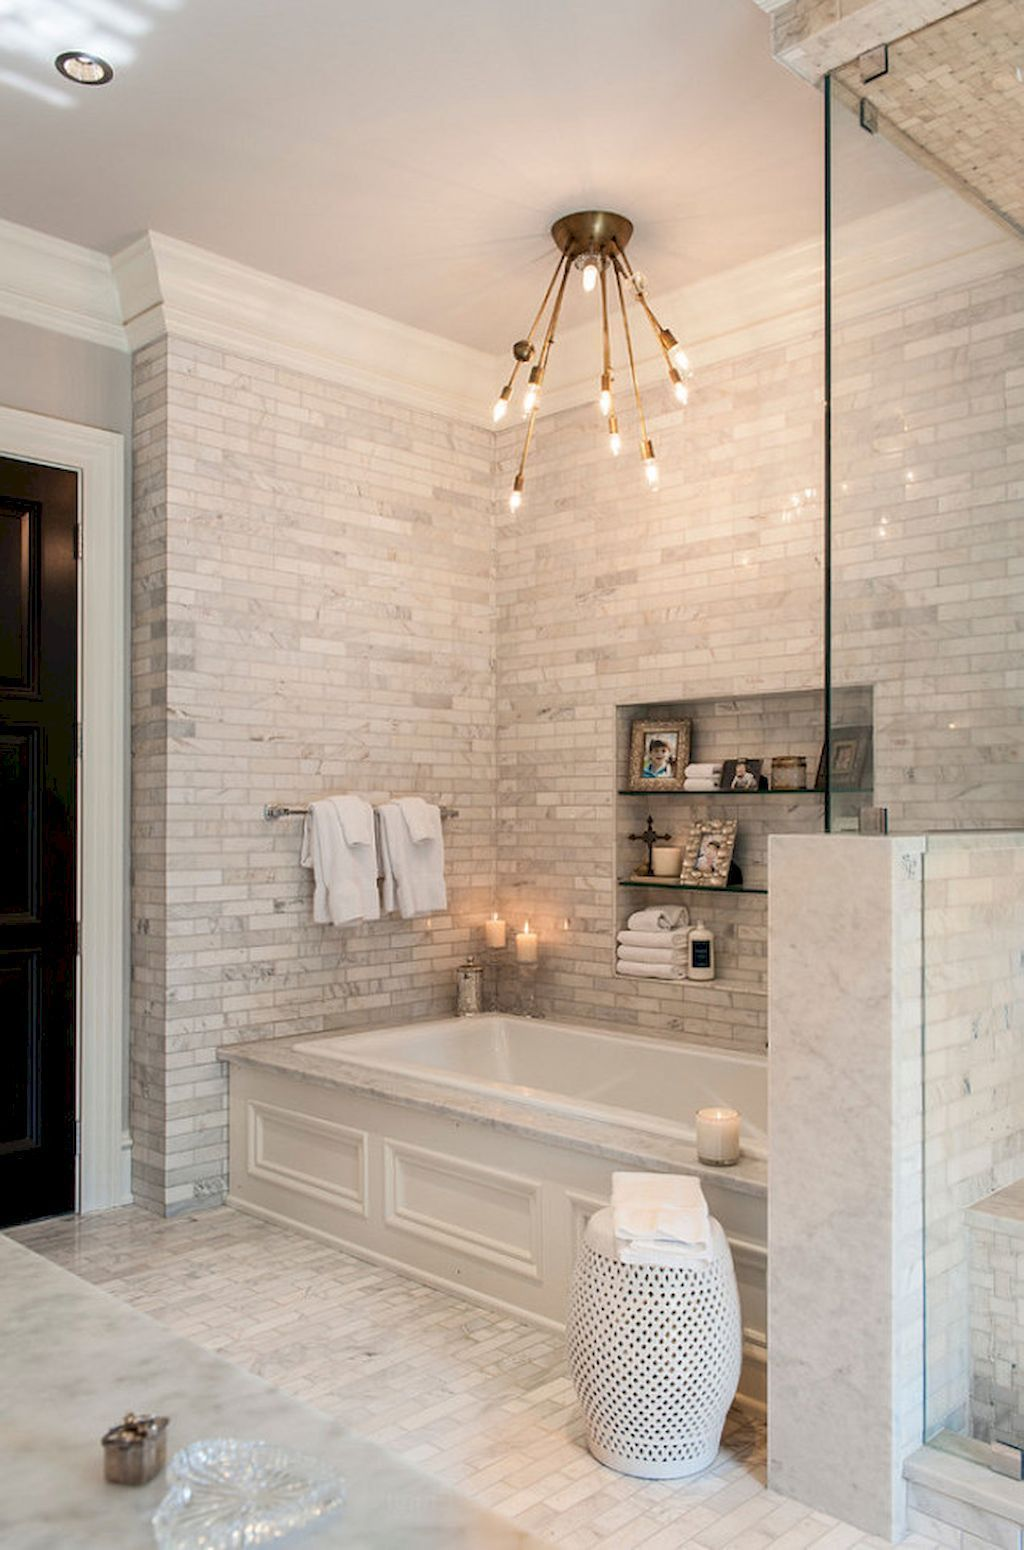 Remodeling Your Bathroom In A Cost Effective Manner Bathroom